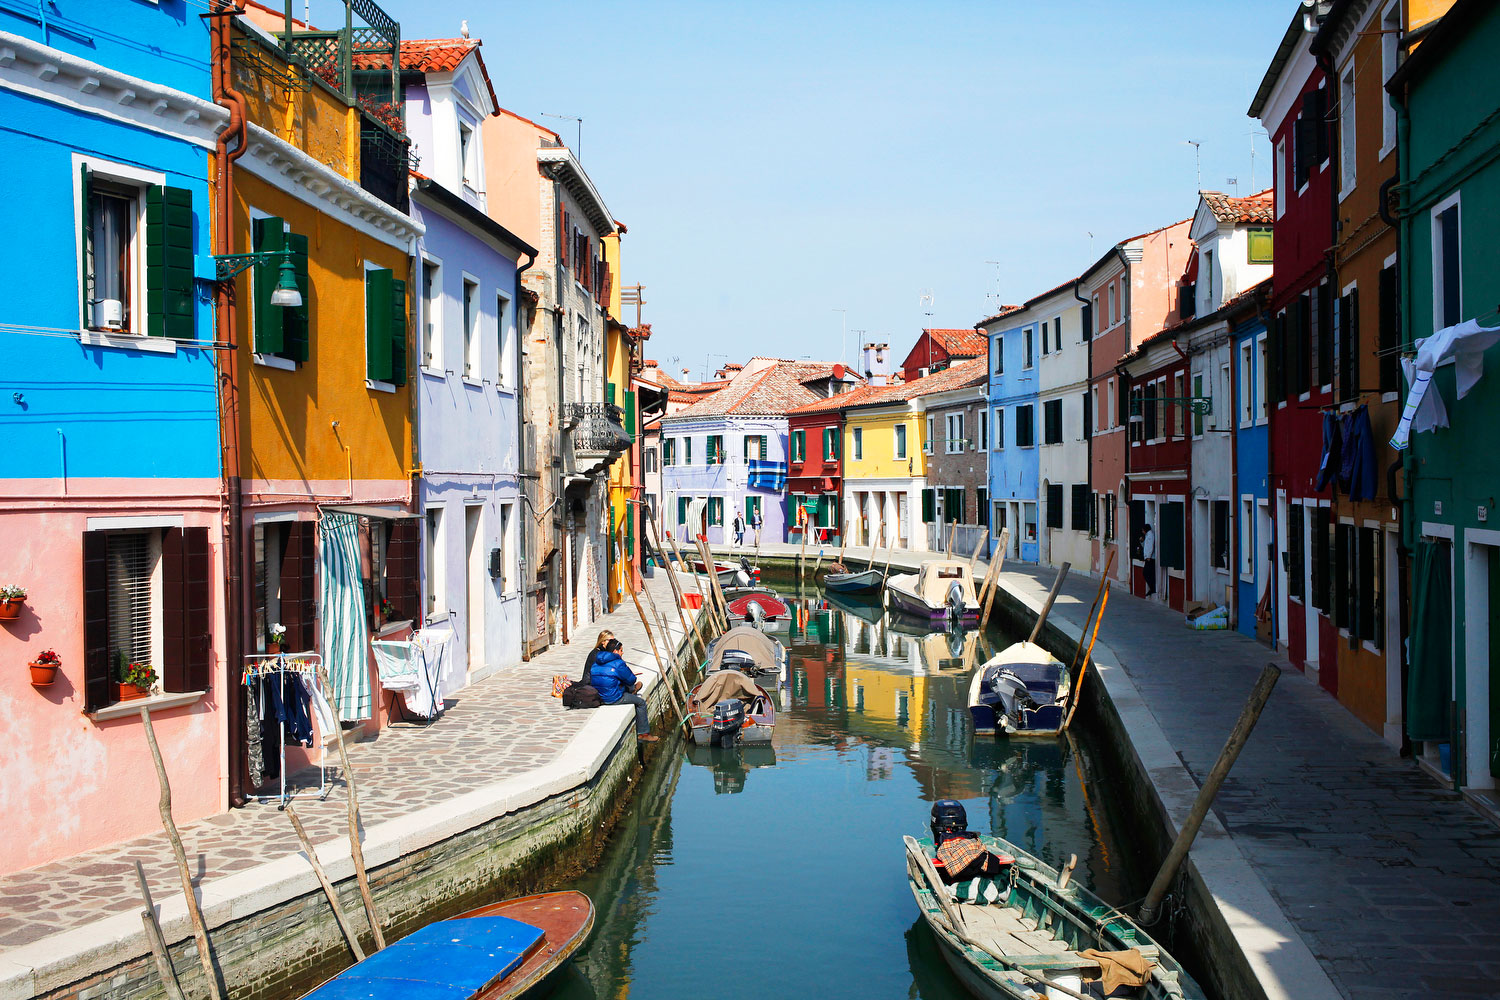 Waterway in Burano, Italy | Freckle & Fair